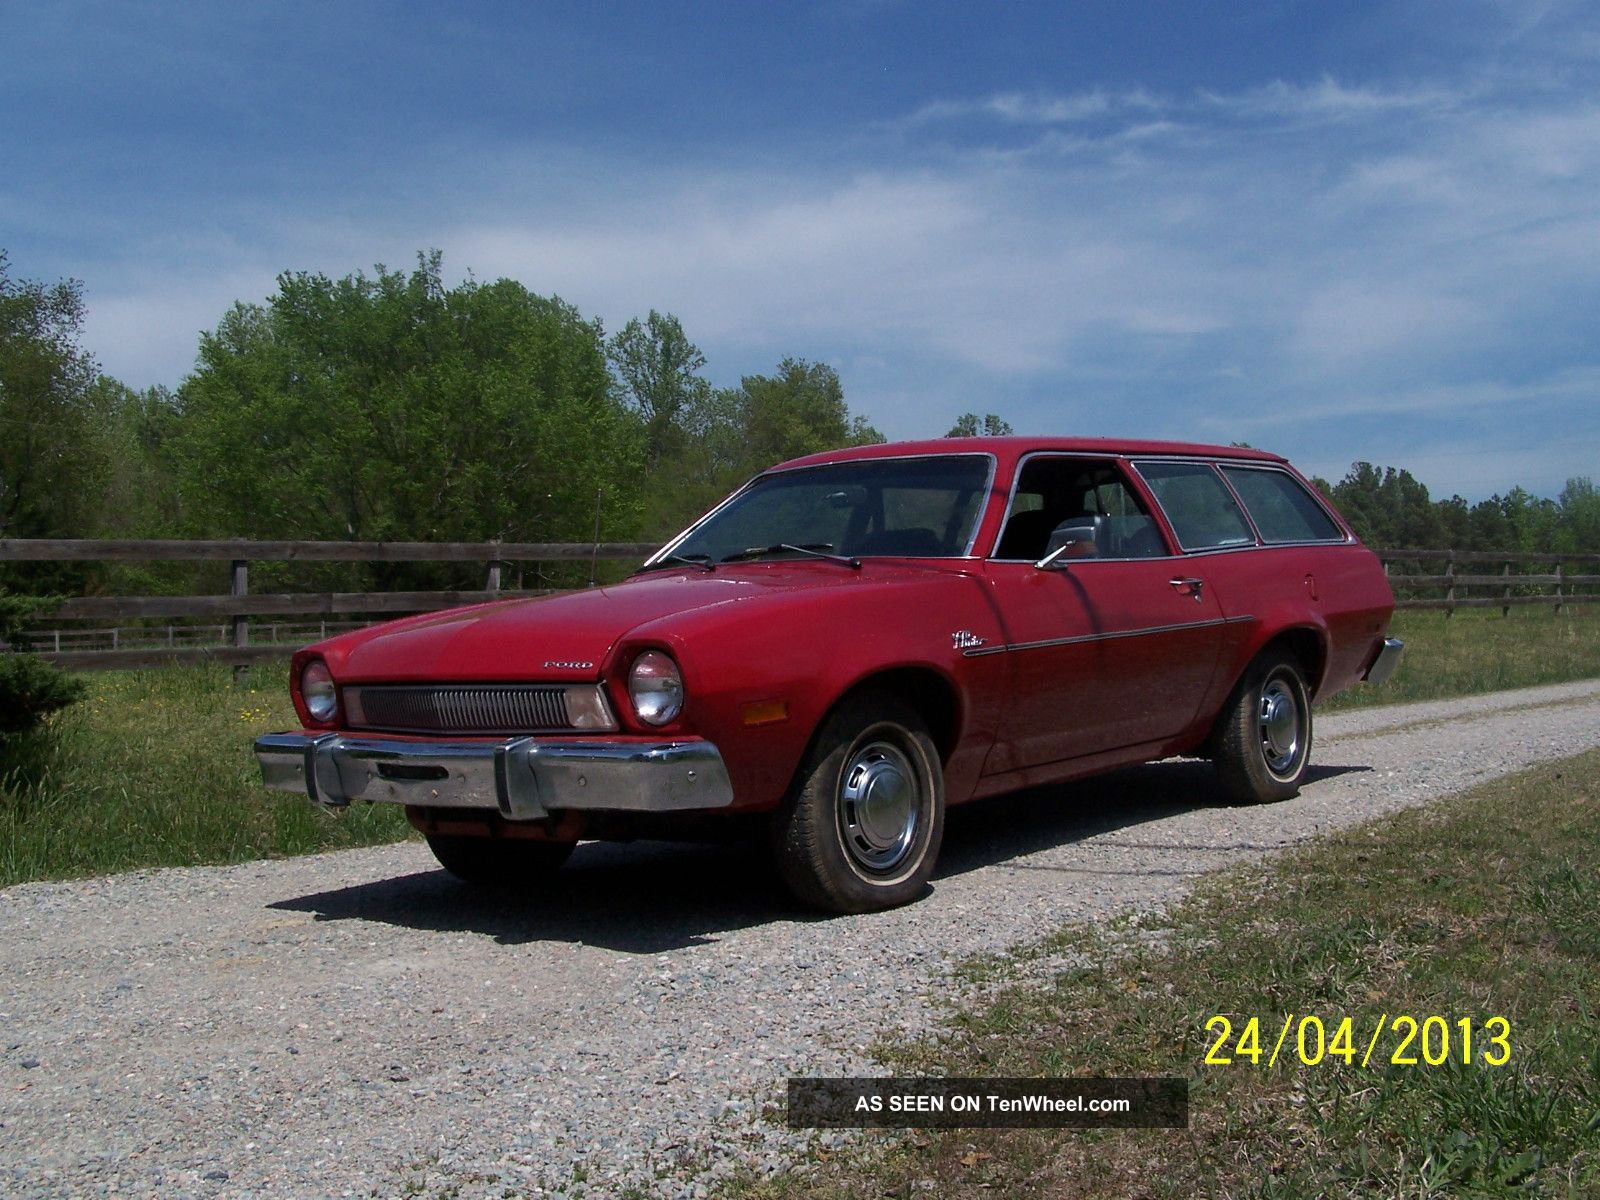 1975 Red Ford Pinto Station Wagon In Restoration Condition